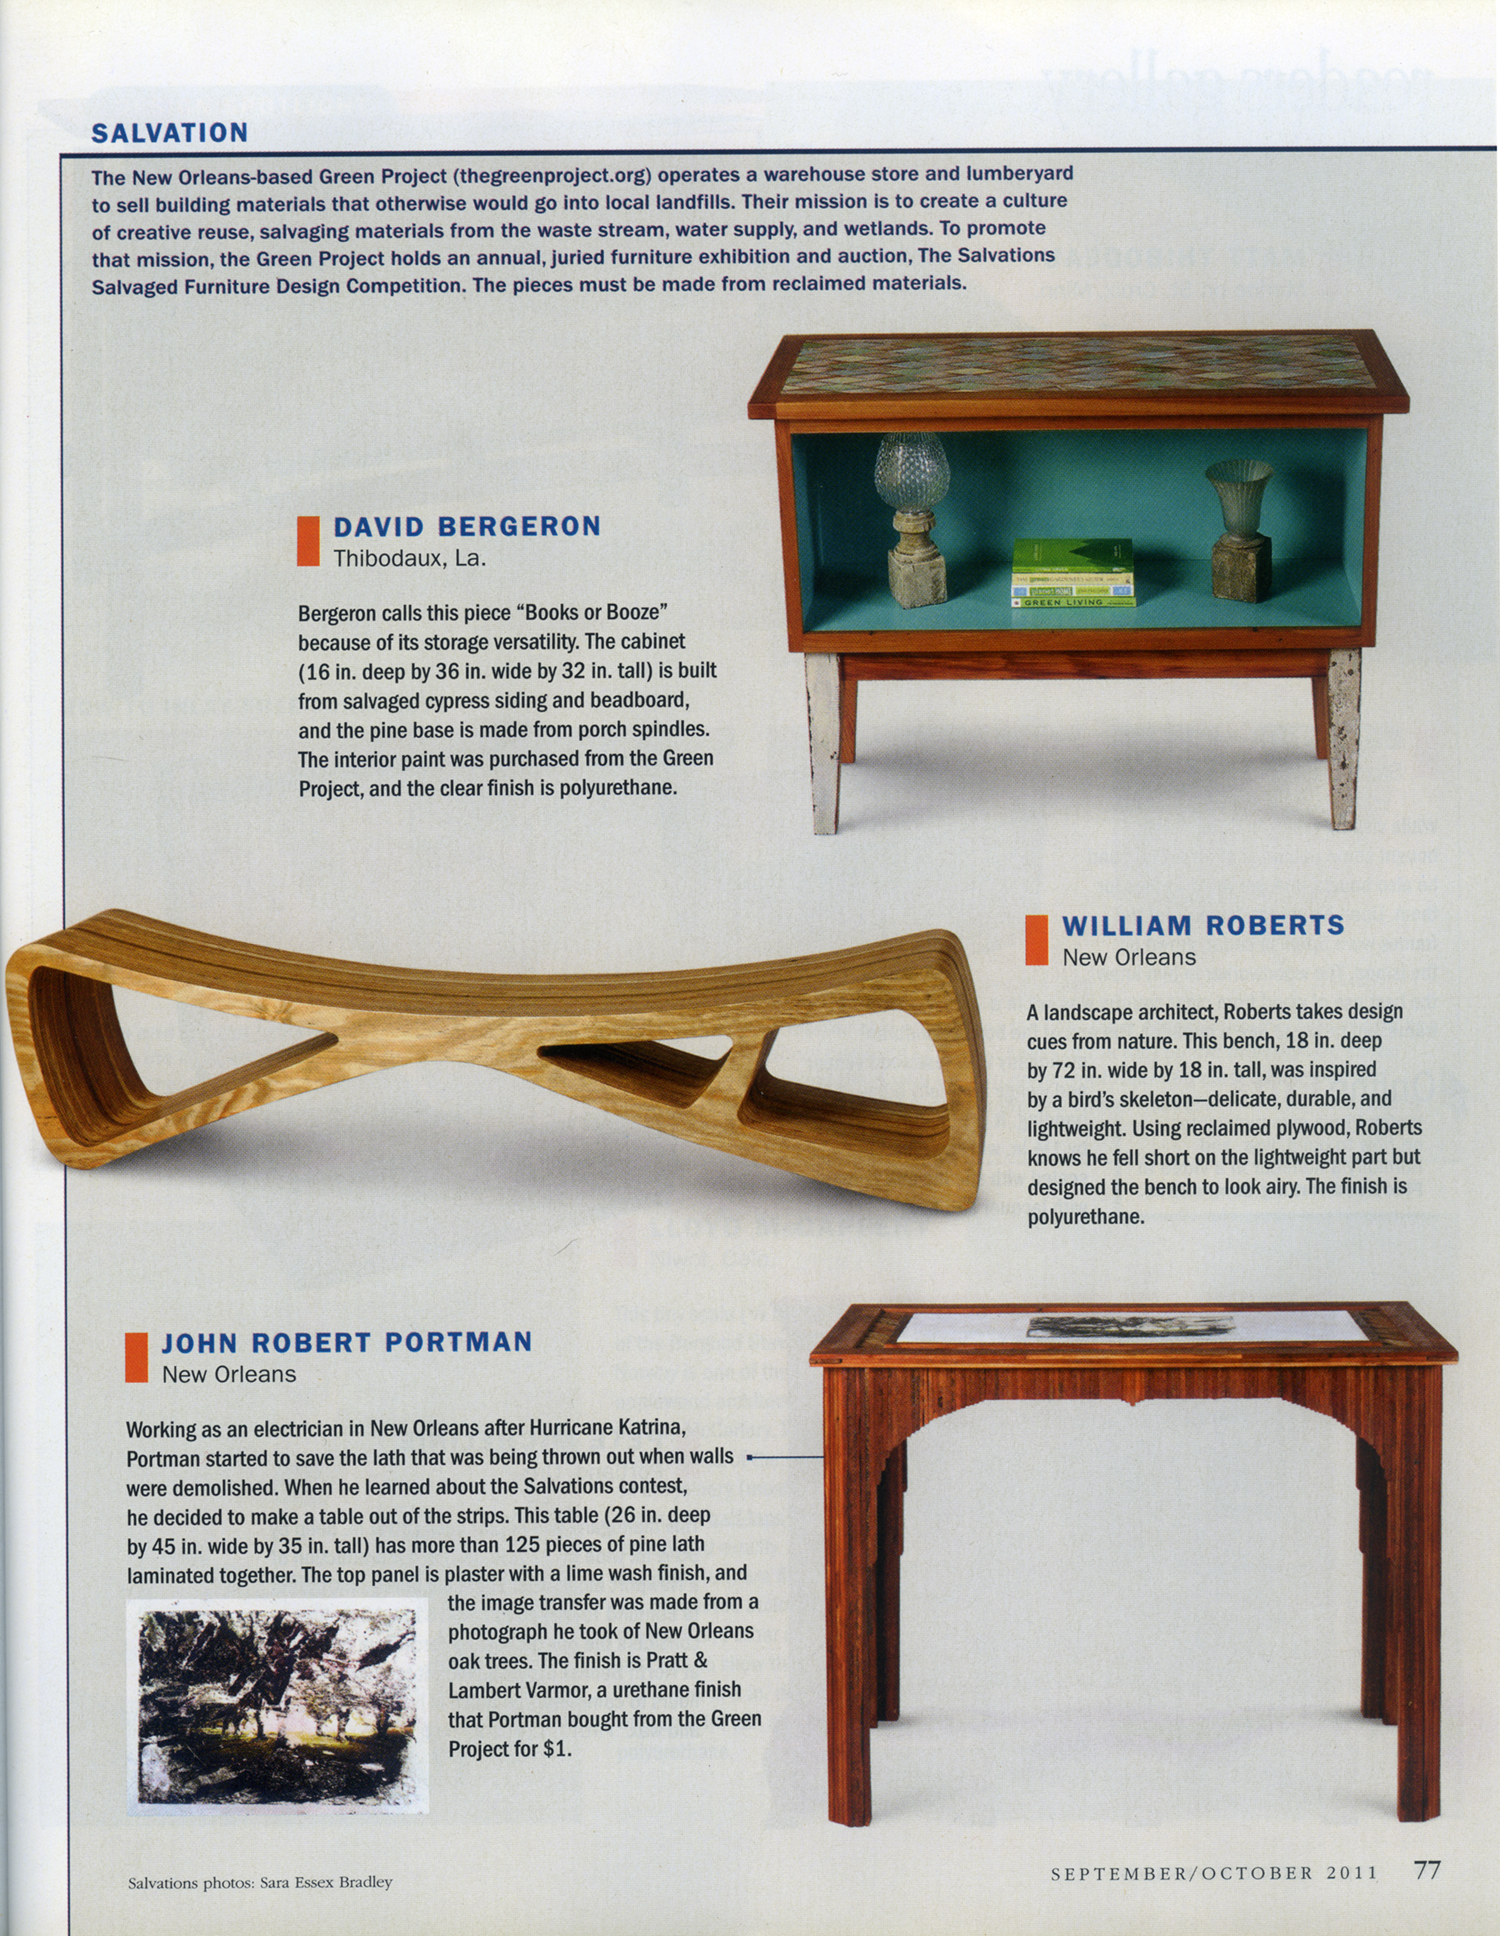 Fine Woodworking Magazine Portman Workshop